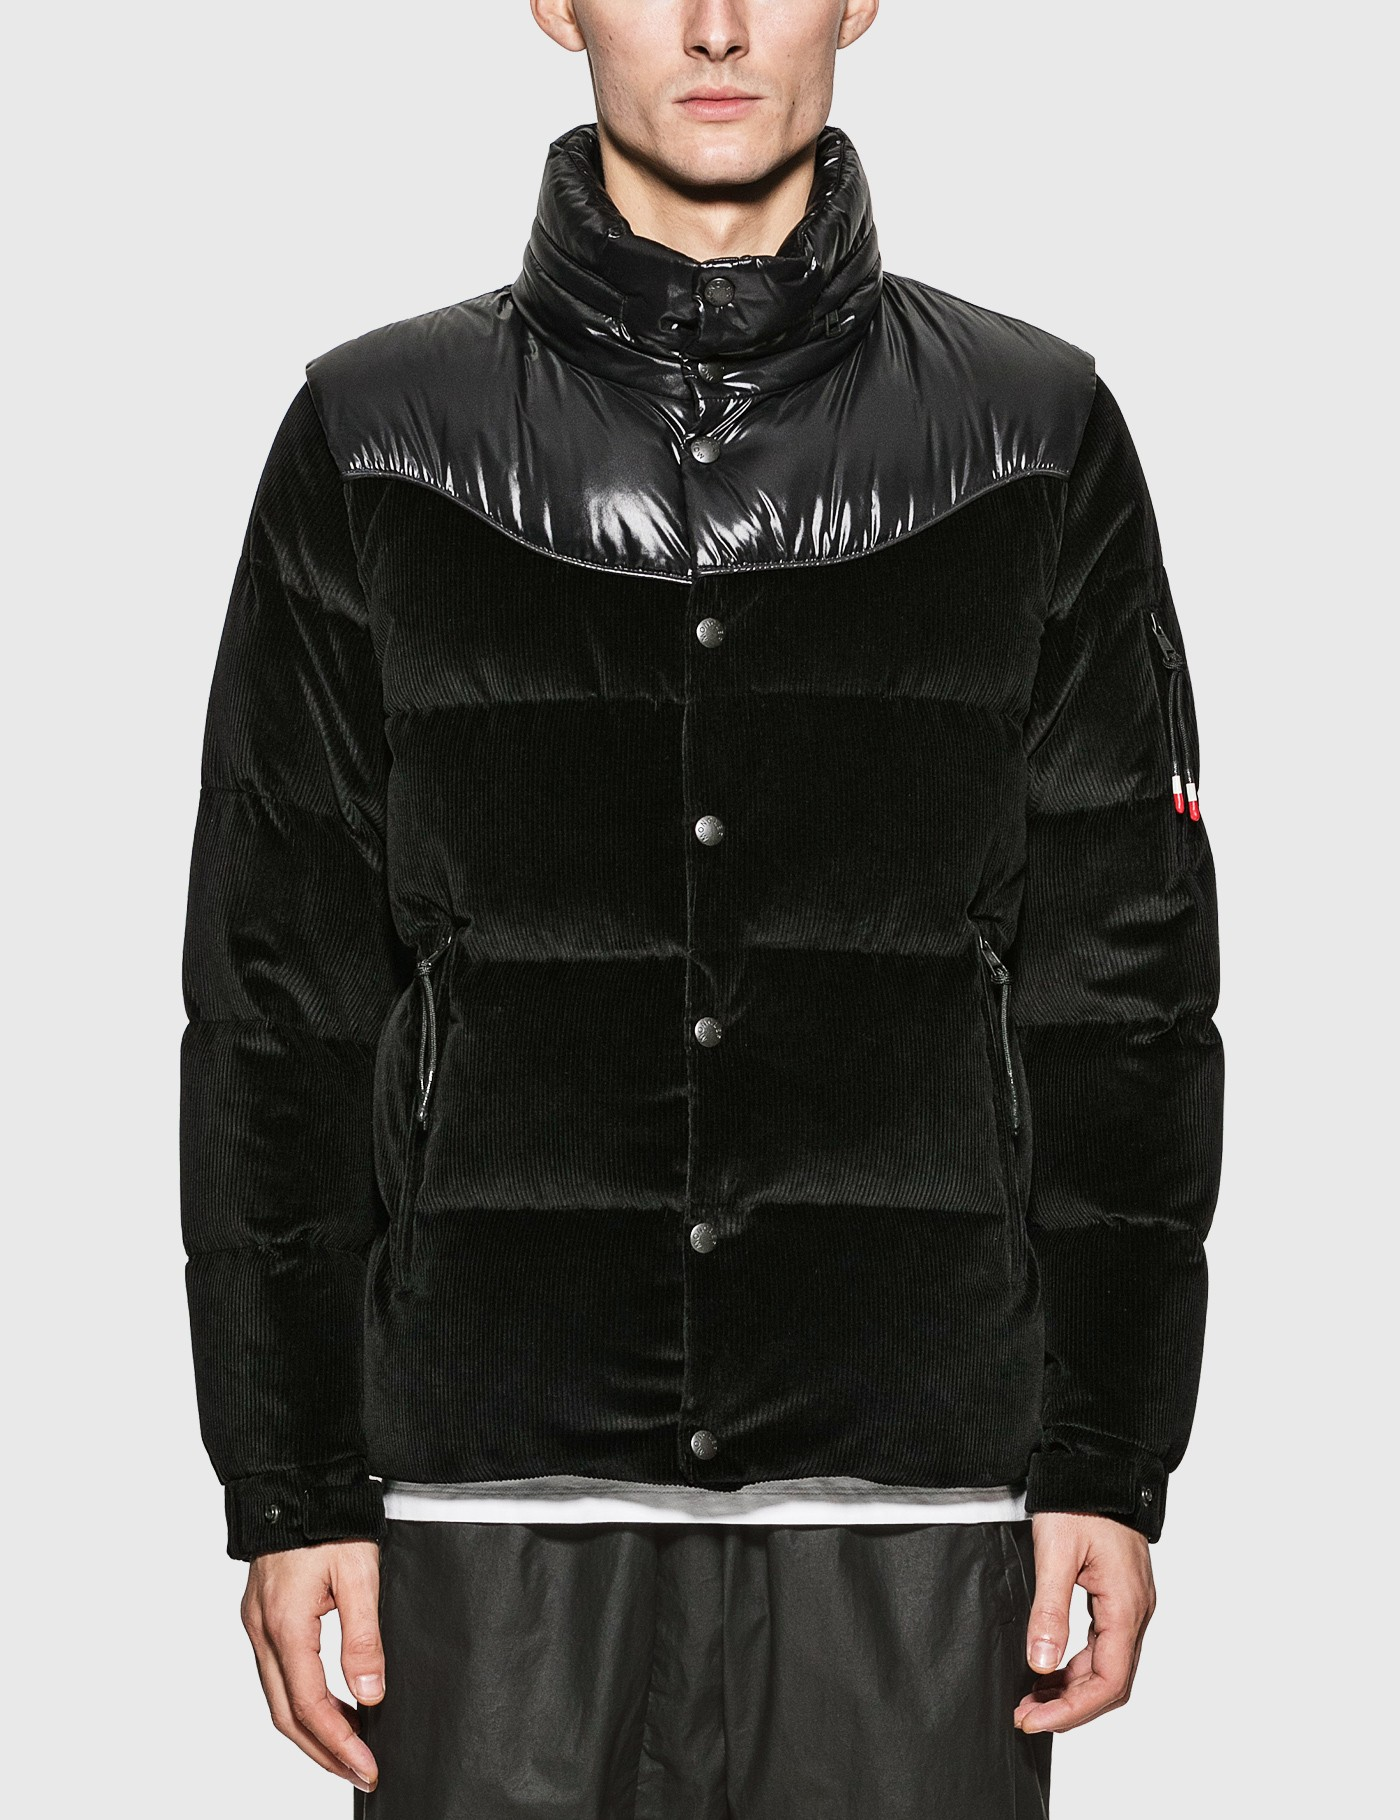 Moncler Genius Cottons 1952 X UNDEFEATED DANUM JACKET